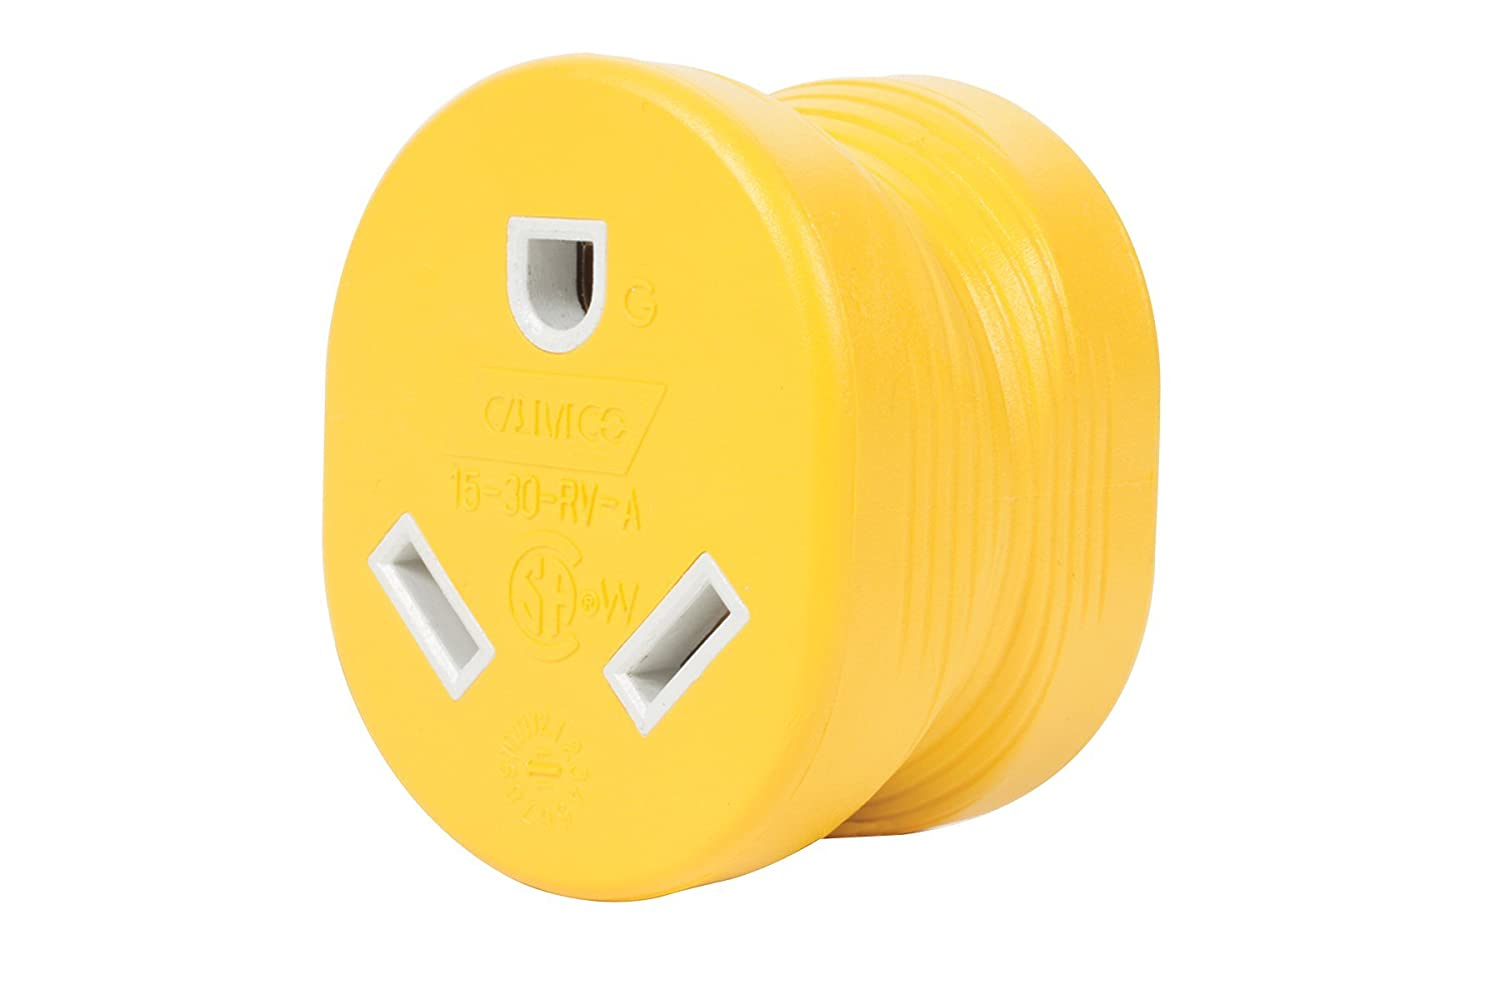 Amazon.com: 30A -> 15A Adapter This allows us to use our 30A power cord in a standard household electrical outlet.